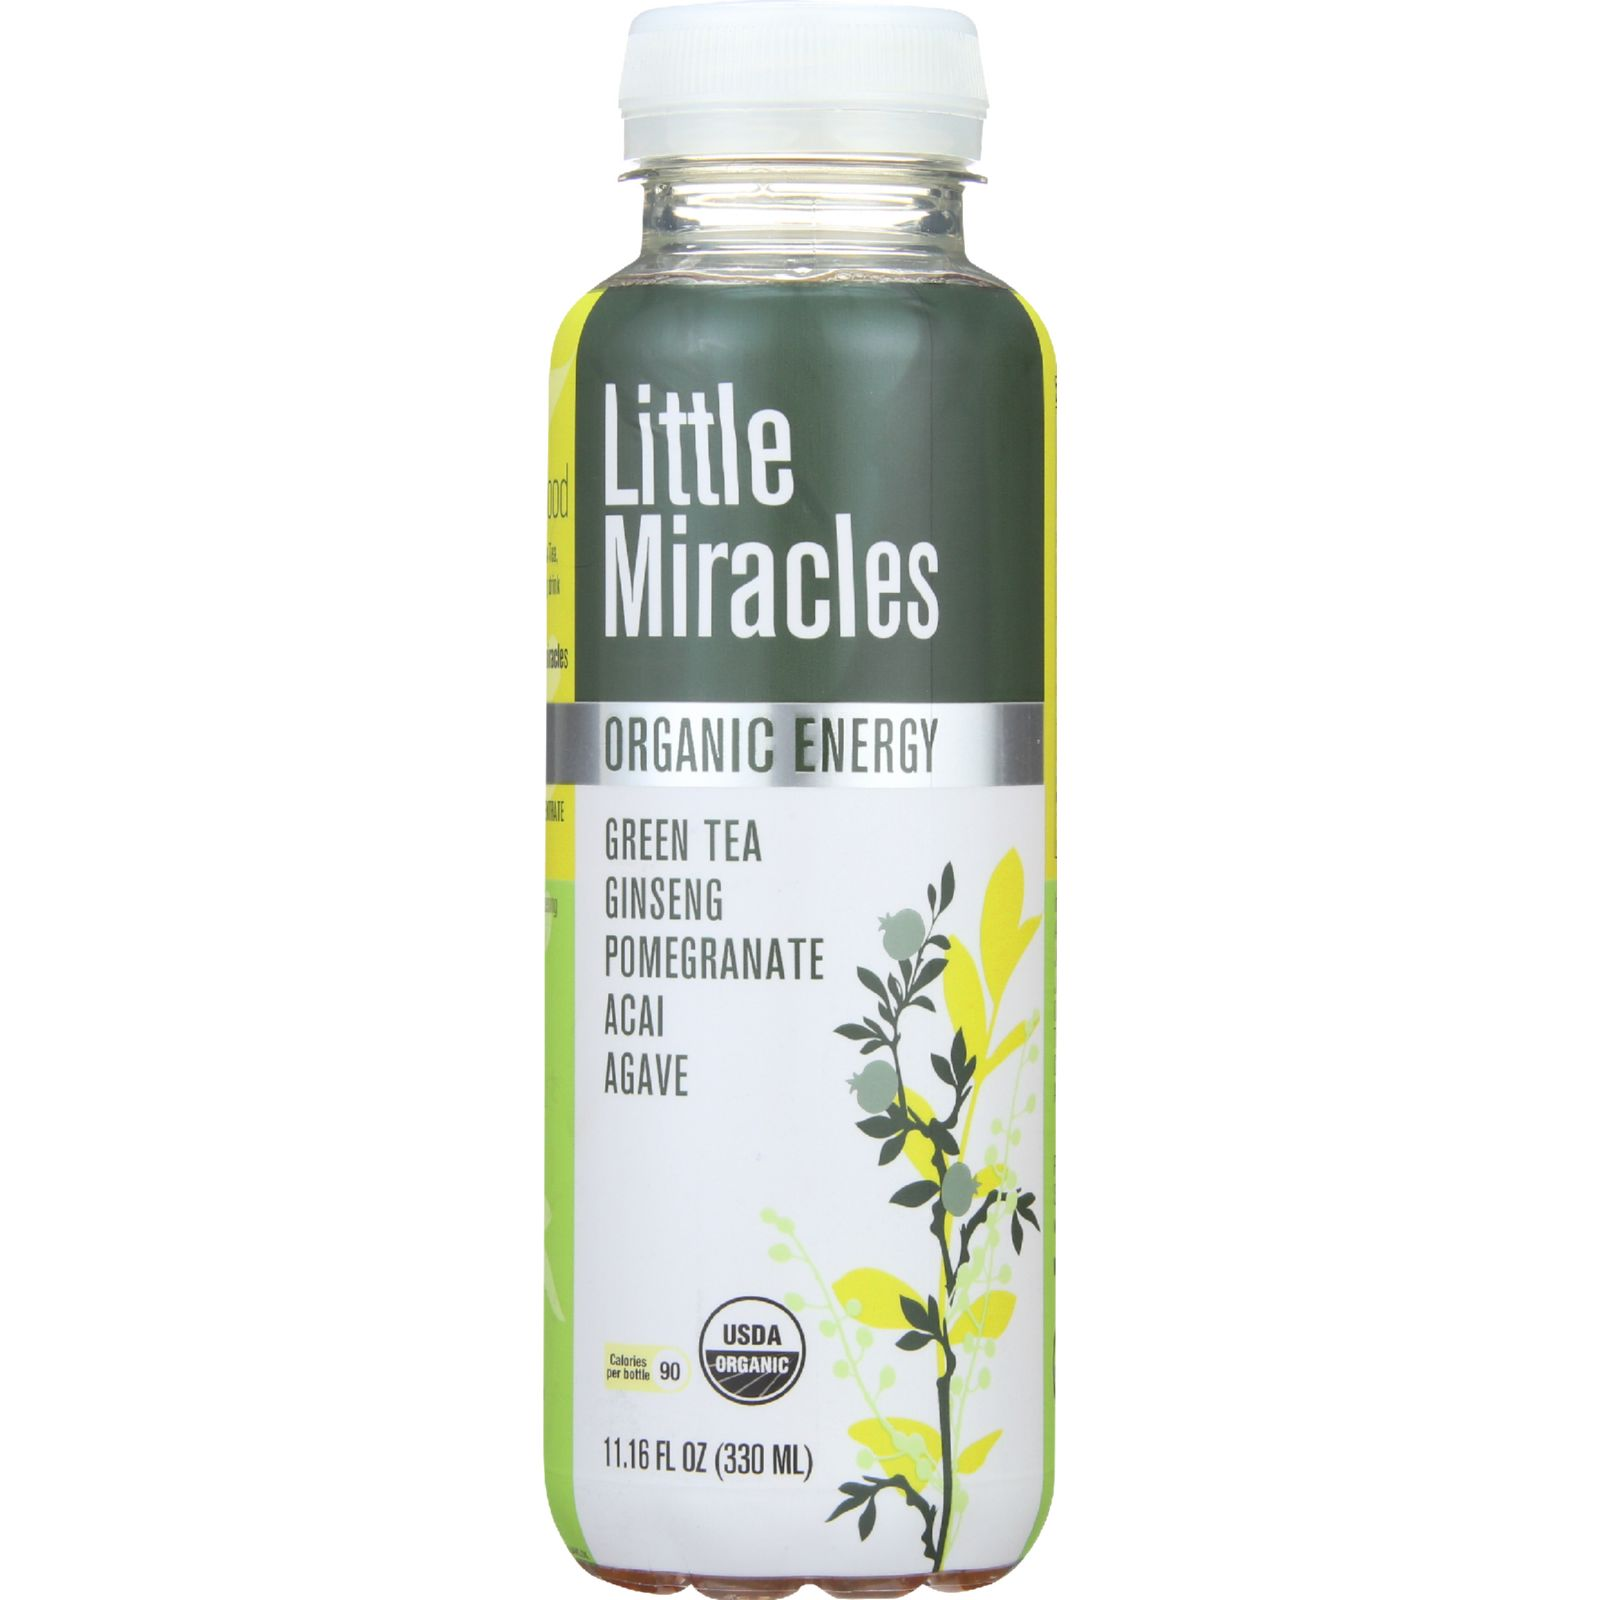 Little Miracles Drink - Organic - Ready To Drink - Green Tea Ginseng Pomegranate Acai Agave - 11.16 Oz - Case Of 12